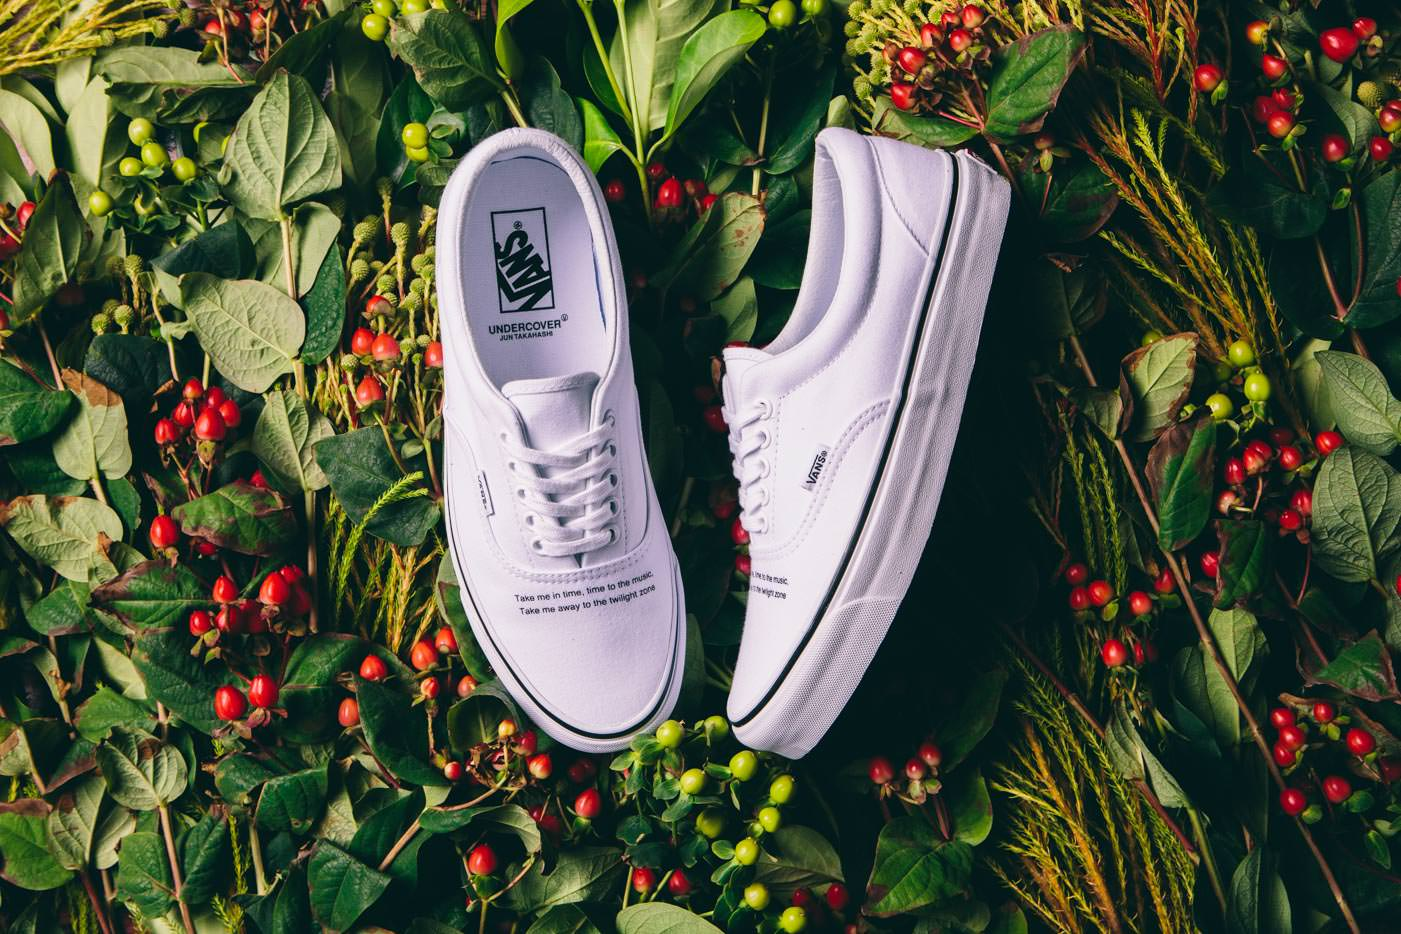 354cd285e4 VANS X Undercover  A Soft Take On Skate From The Premium Japanese ...